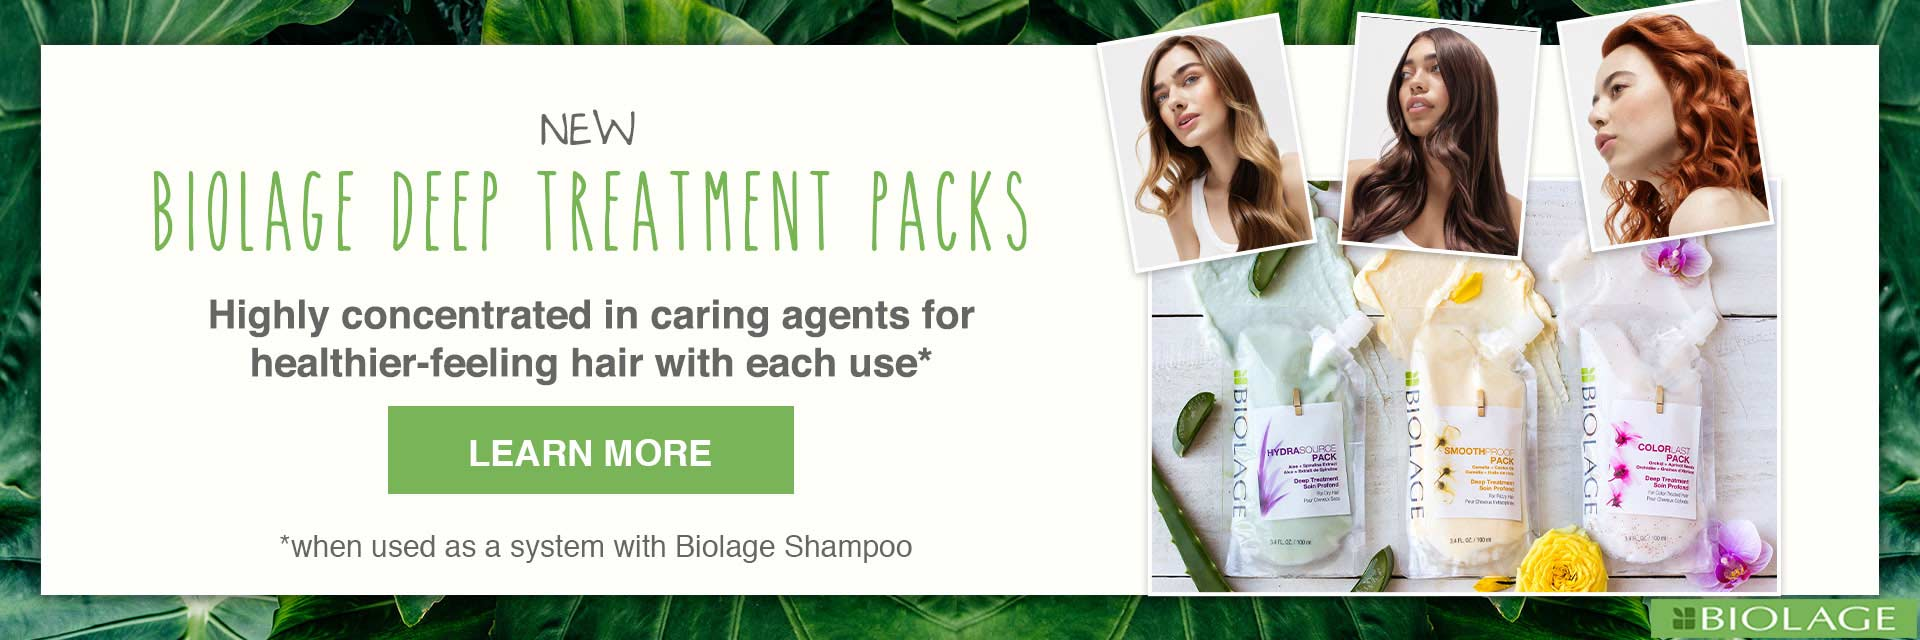 Biolage-deep-treatment-packs-desktop.jpg